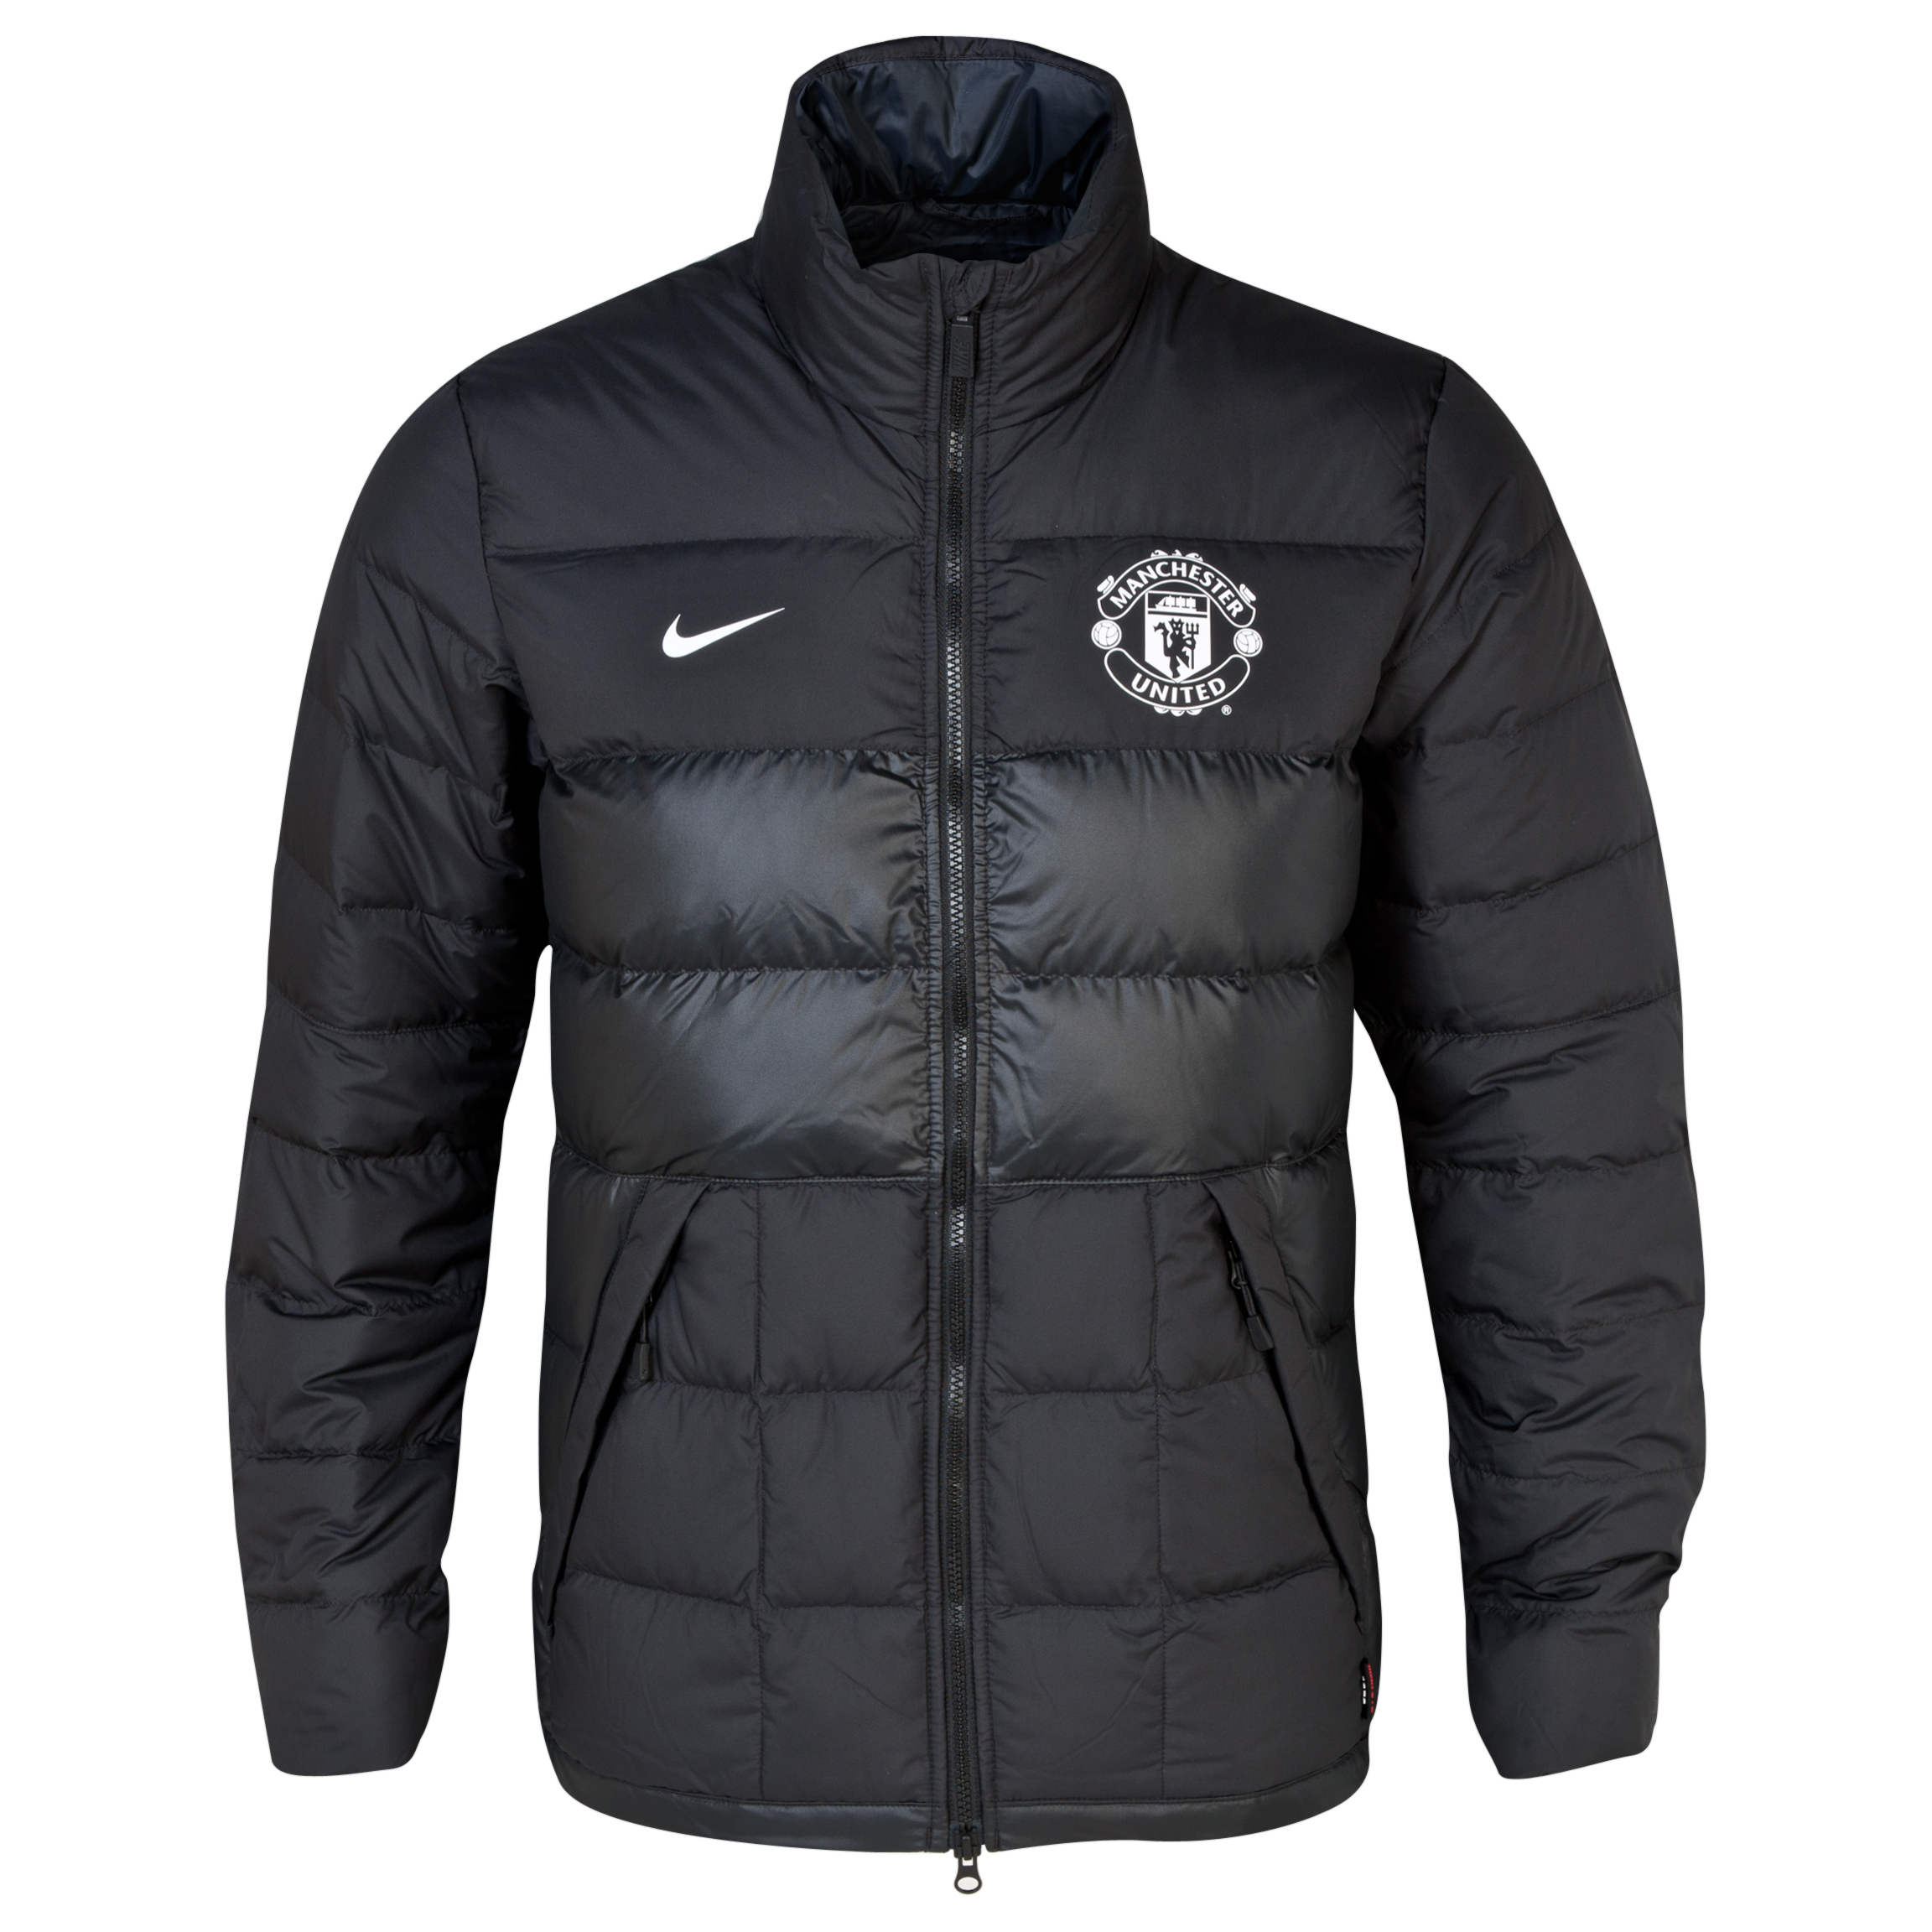 Manchester United Alliance 550 Jacket - Black/White Black